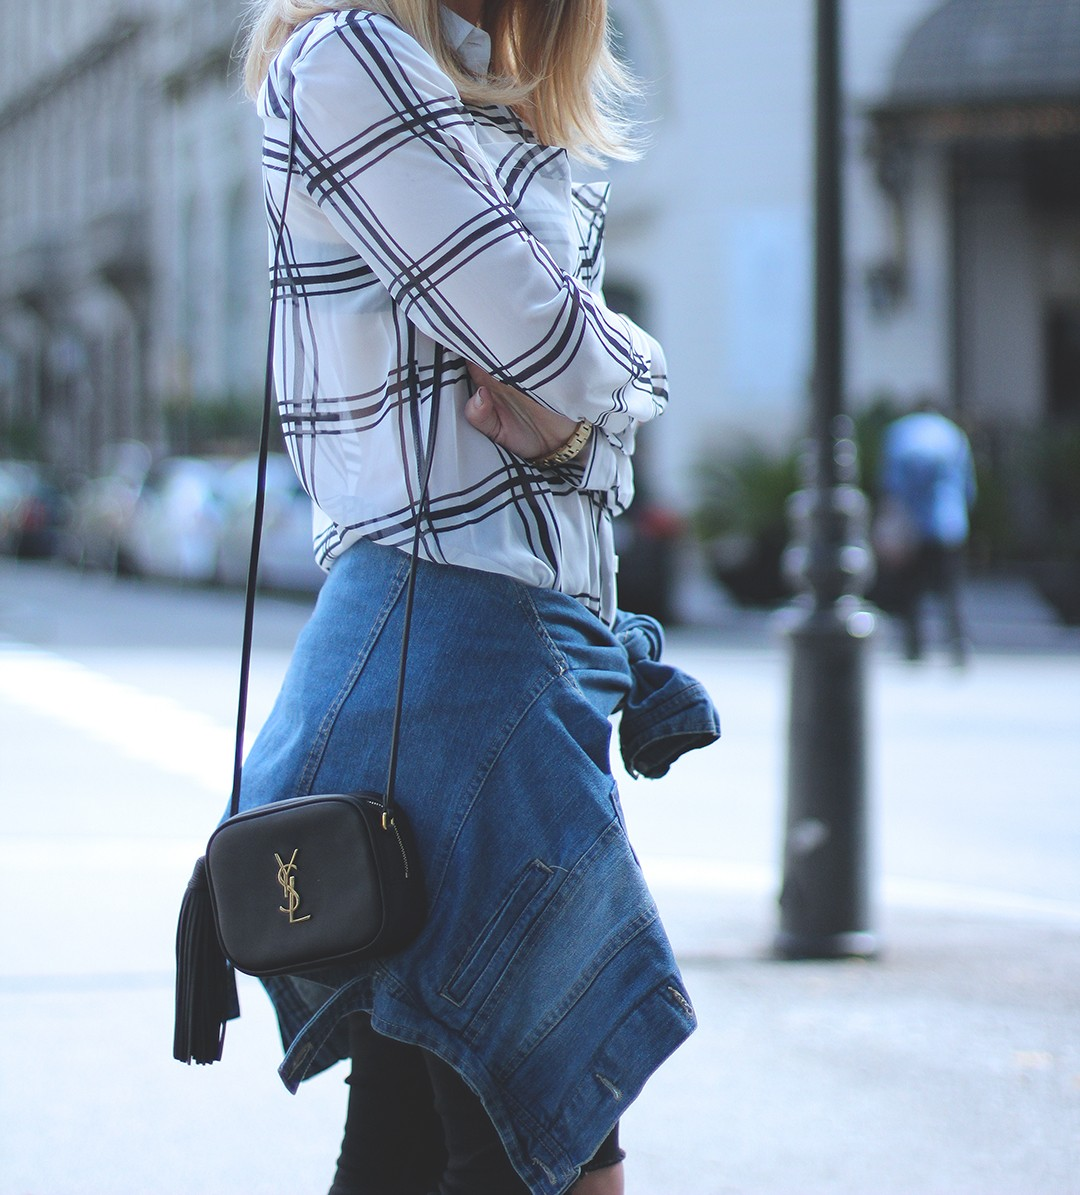 plaid-shirt-outfit-blogger-2016